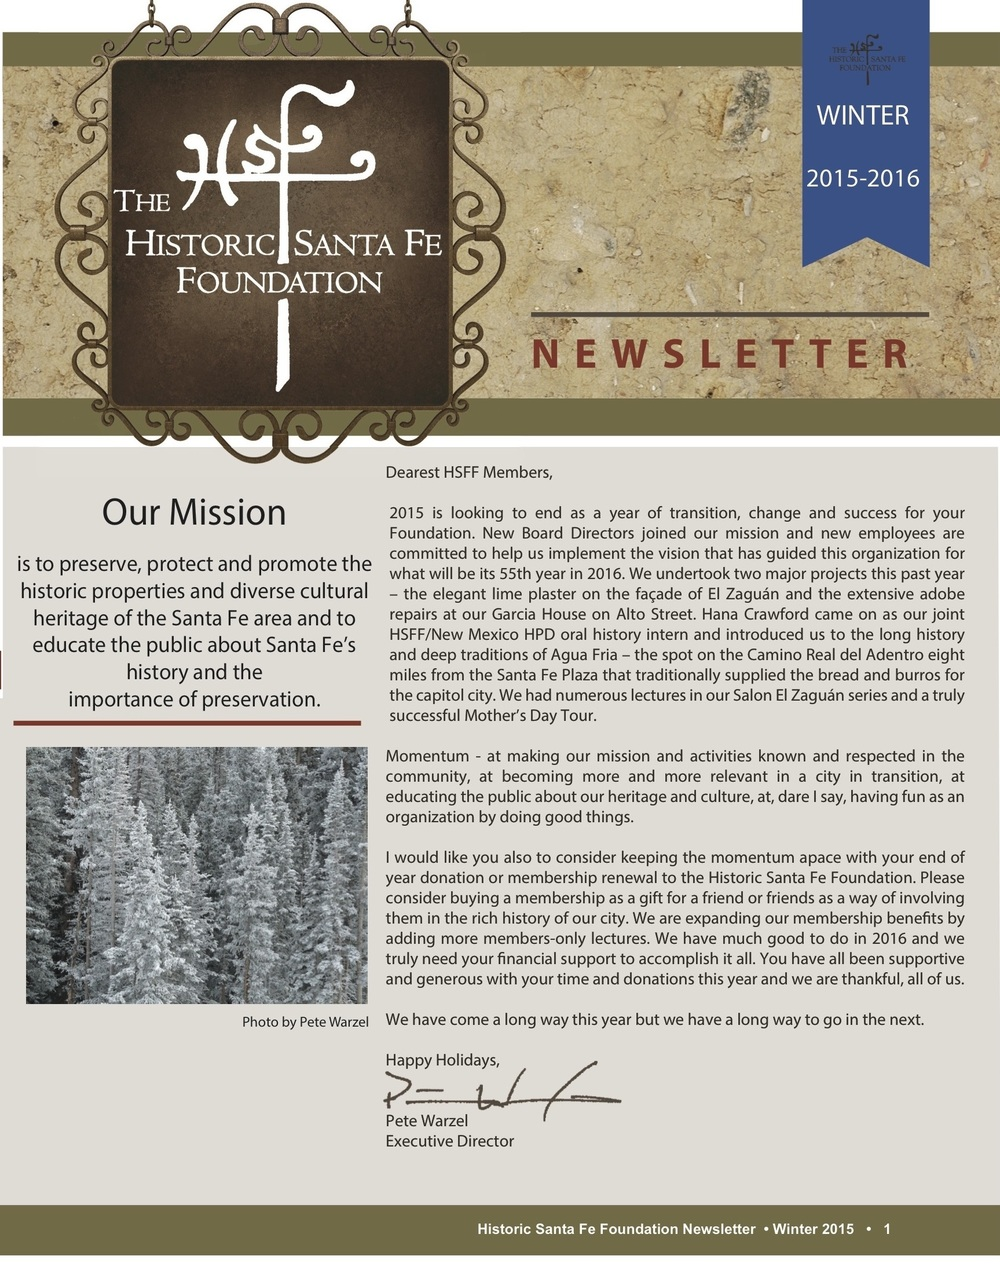 HSFFWinter2015Newslettercover.jpg